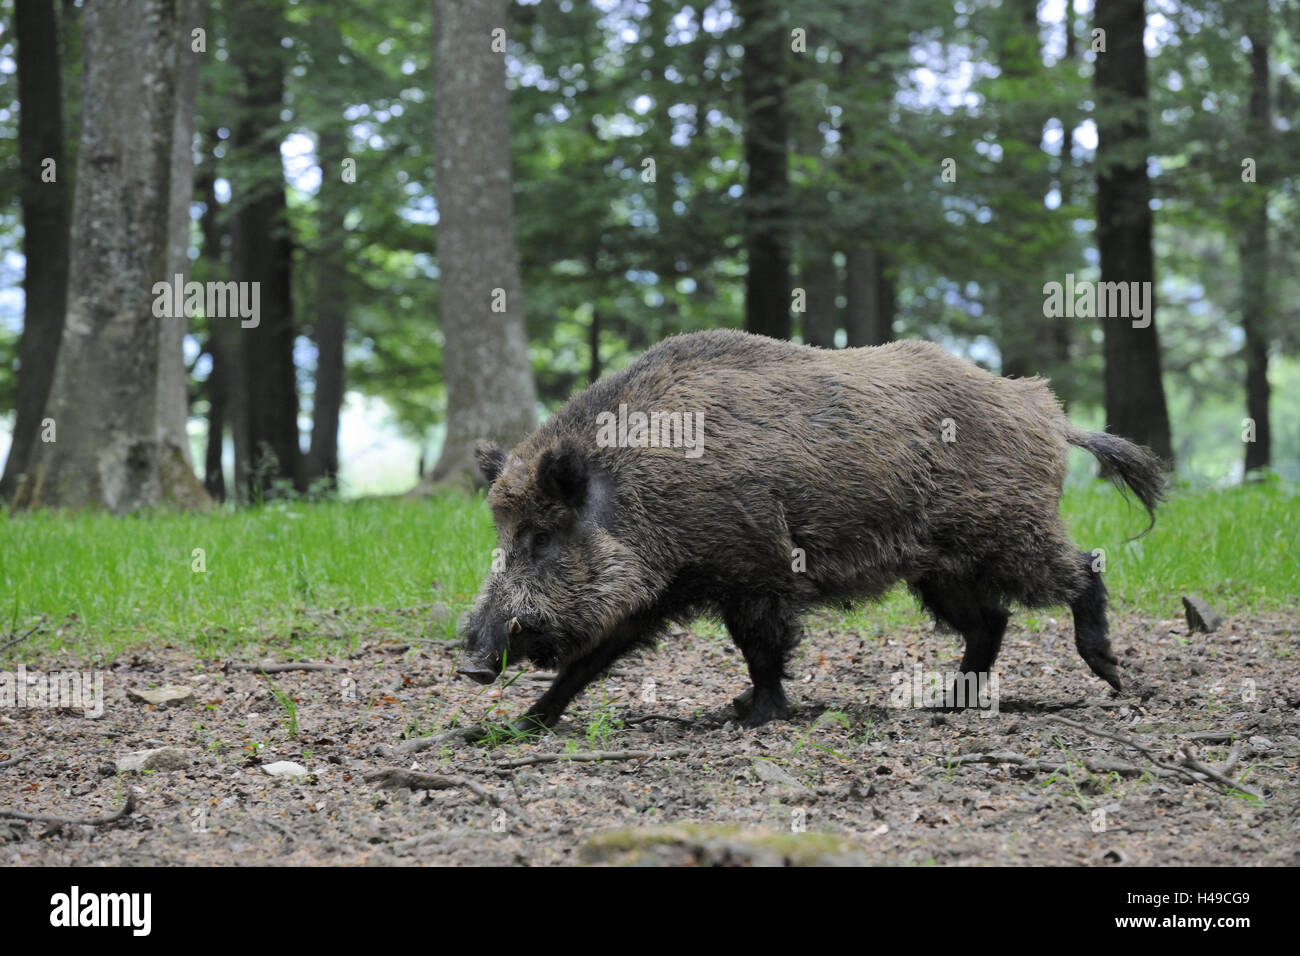 boar, side view, Sus scrofa, search for food, - Stock Image